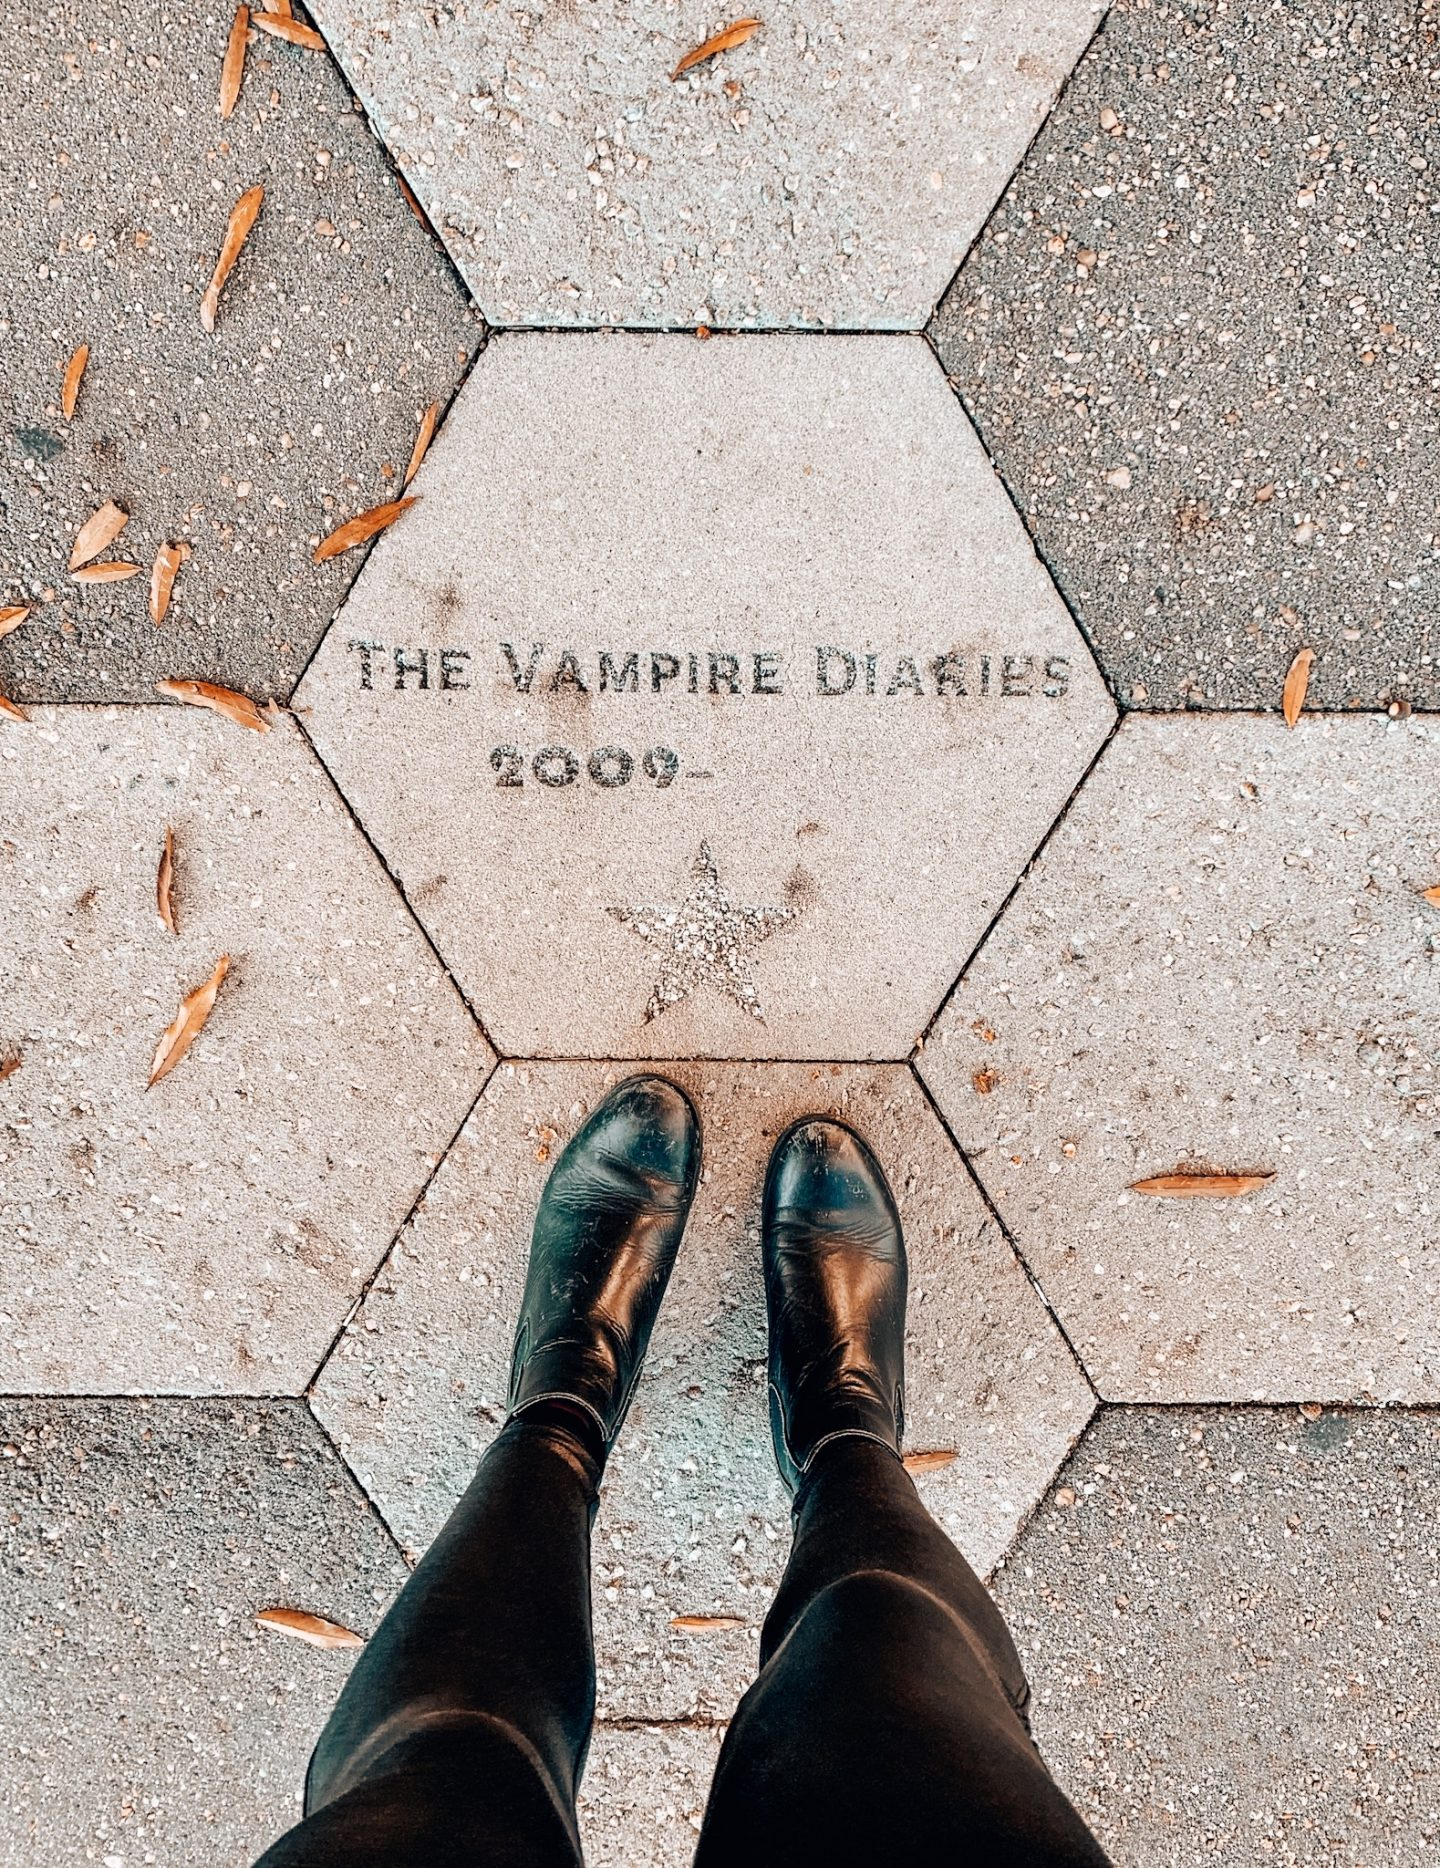 The Vampire Diaries star in downtown Covington, Georgia